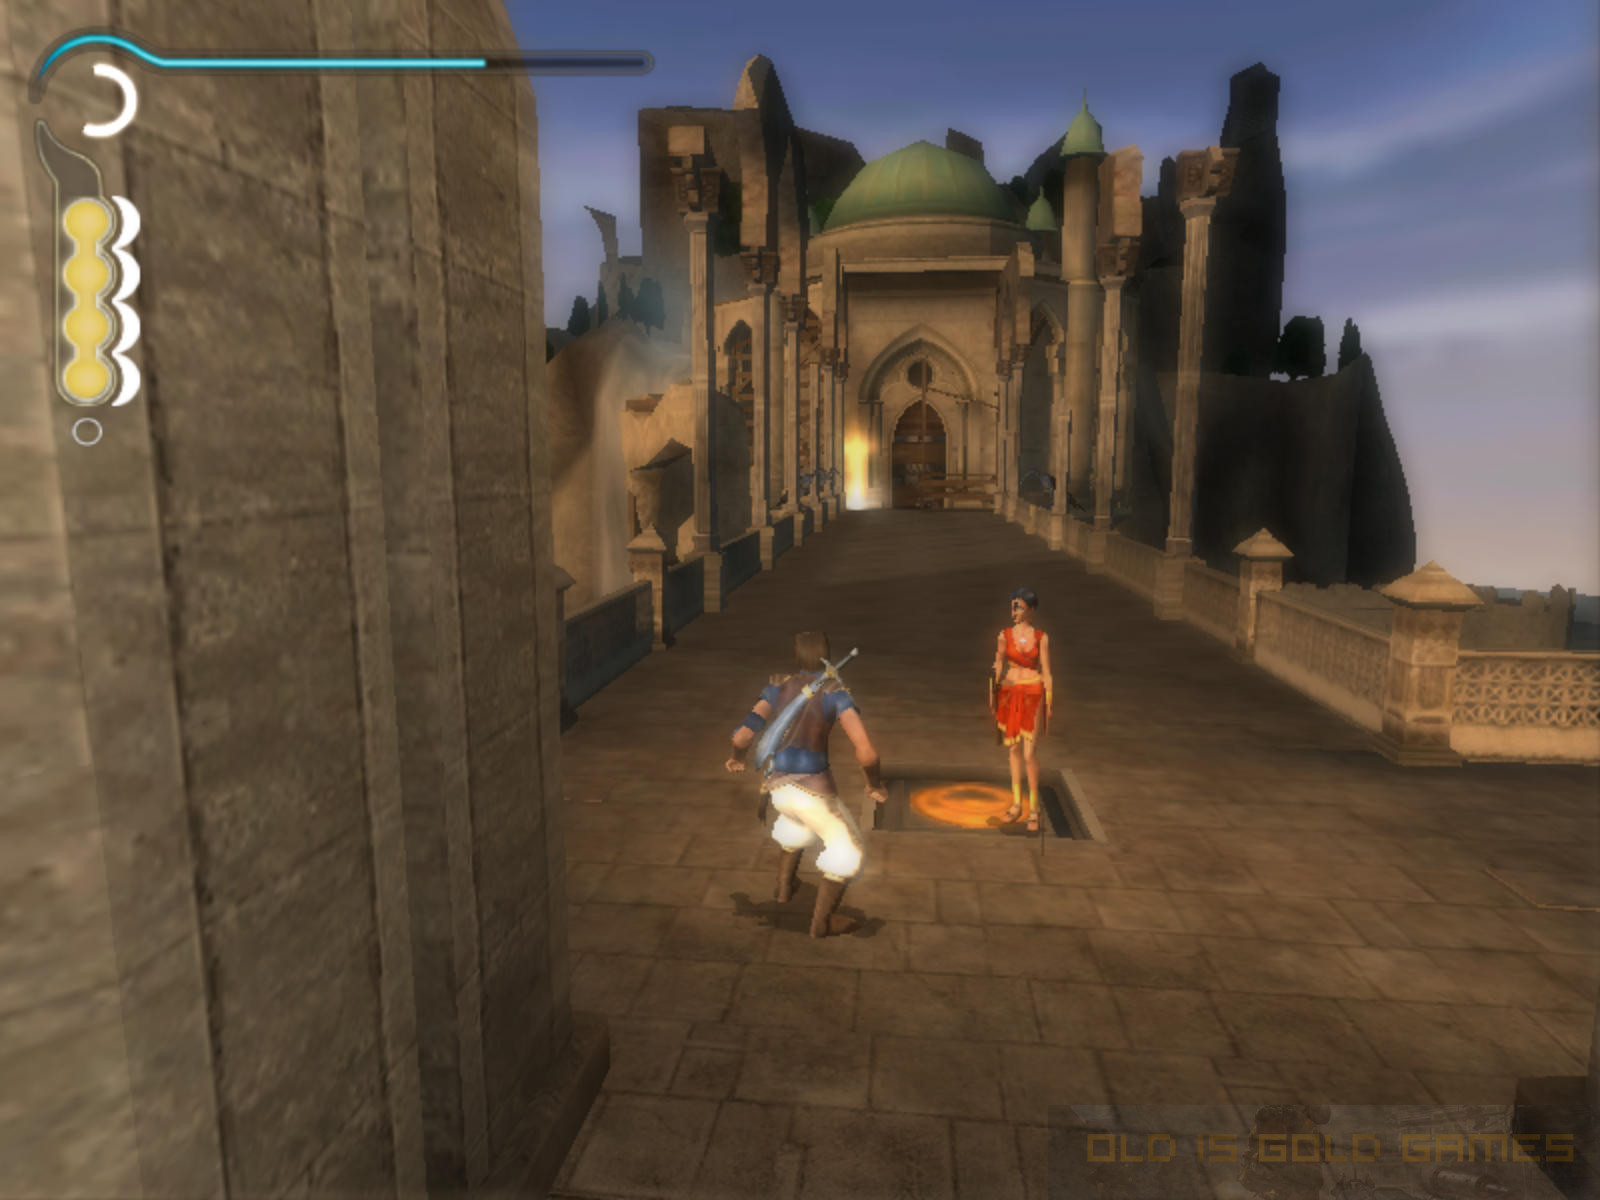 Prince of Persia The Sands of Time Features